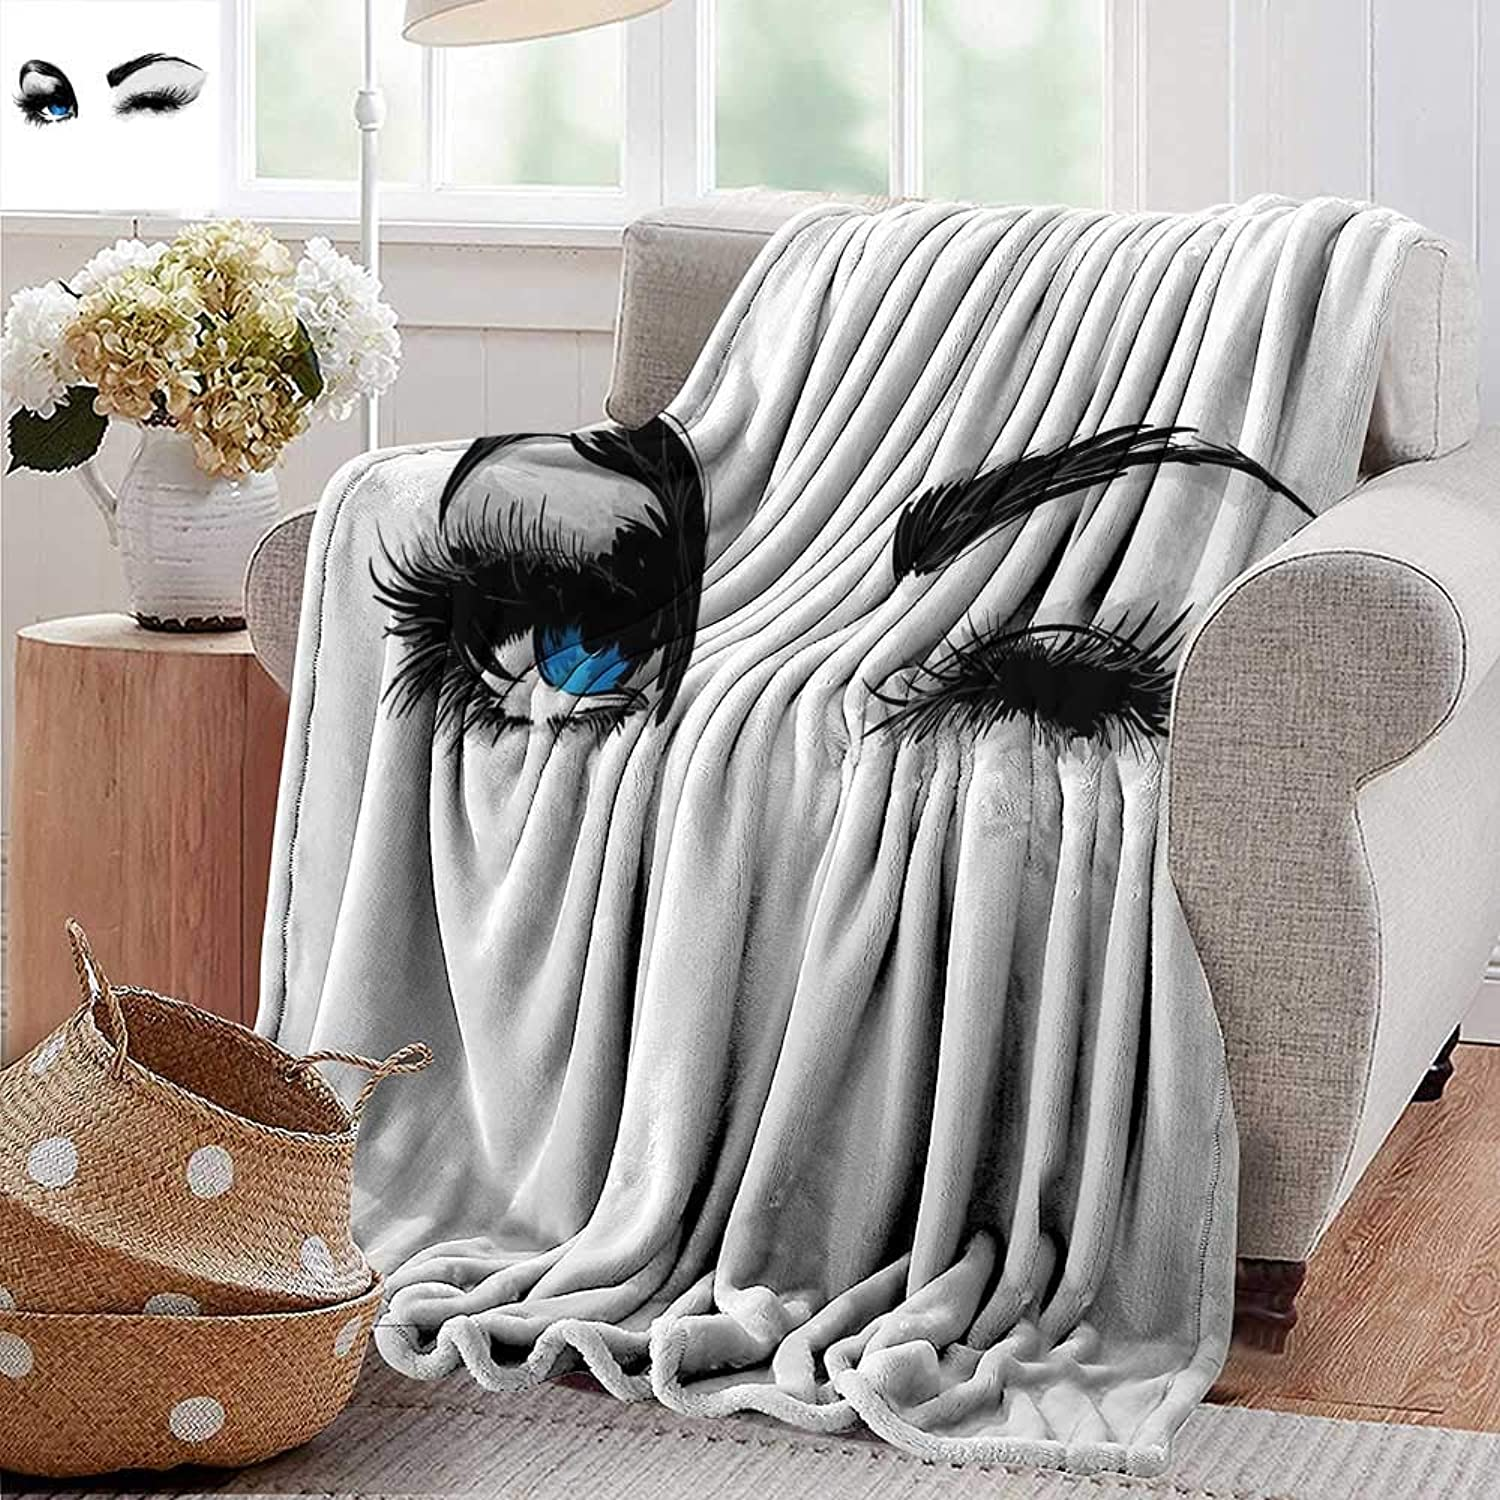 Weighted Blanket for Kids,Eye,Flirty Attractive Woman with bluee Eyes and Thick Lashes Beauty Glamor Youth,bluee Black Pale Grey,Weighted Blanket for Adults Kids, Better Deeper Sleep 35 x60